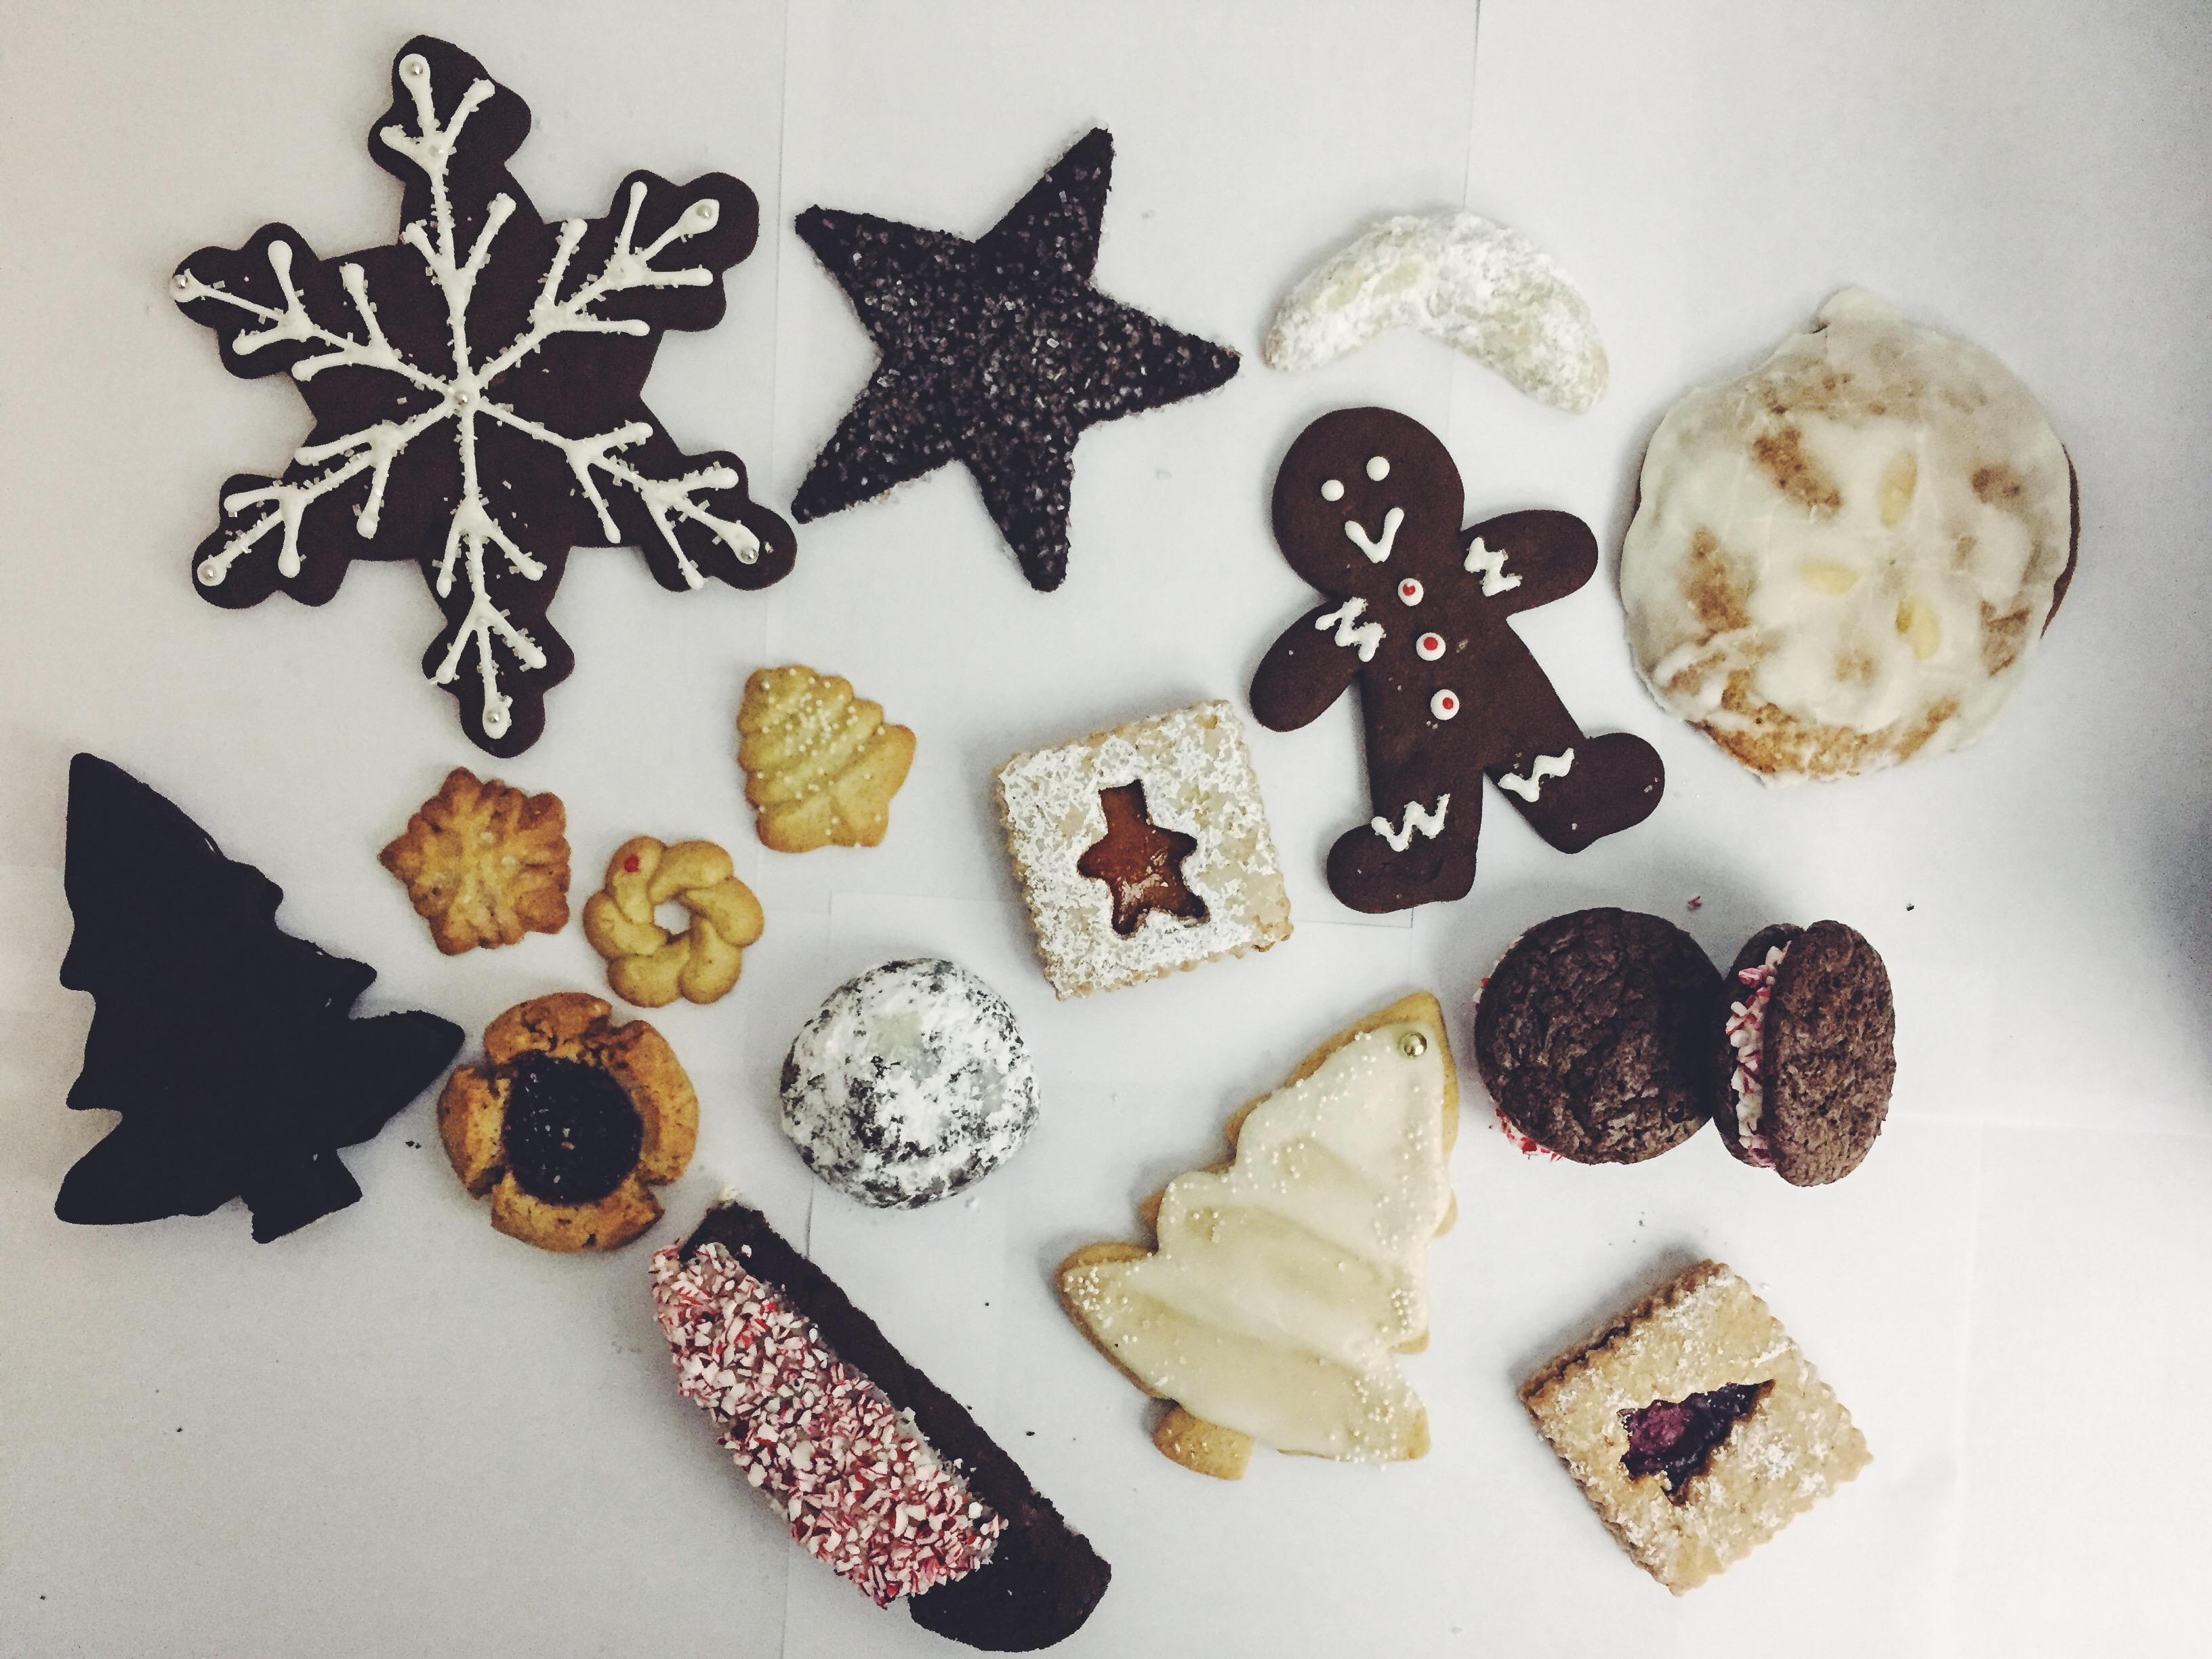 Say hello to a world of holiday cookies – from Austrian linzer and German lebkuchen to American buckeyes and South American alfajores. (Image: Courtesy Baked &amp;amp; Wired)<p></p>